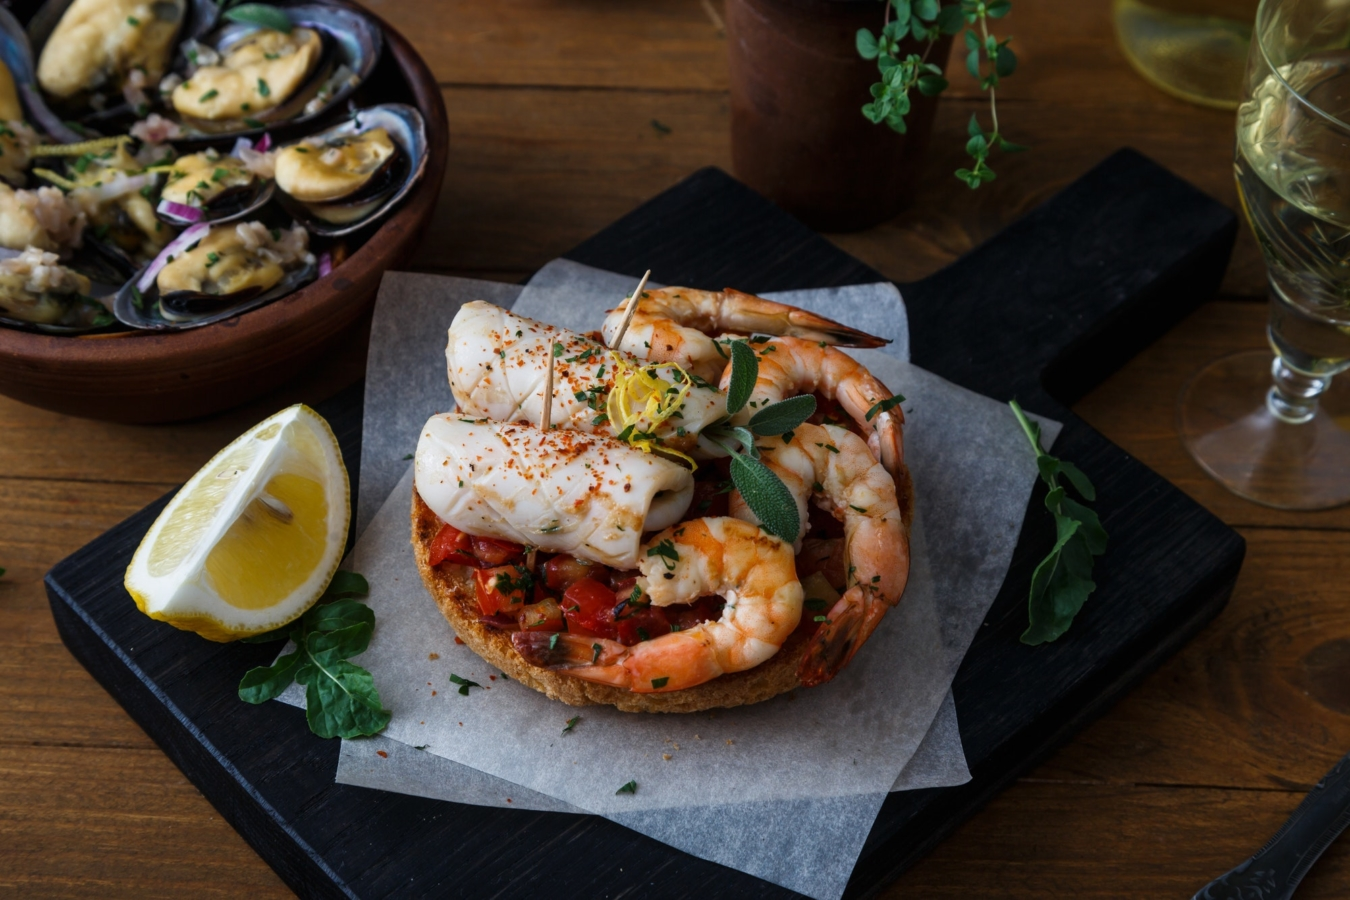 Tapas with shrimp and squid on wooden board, from top